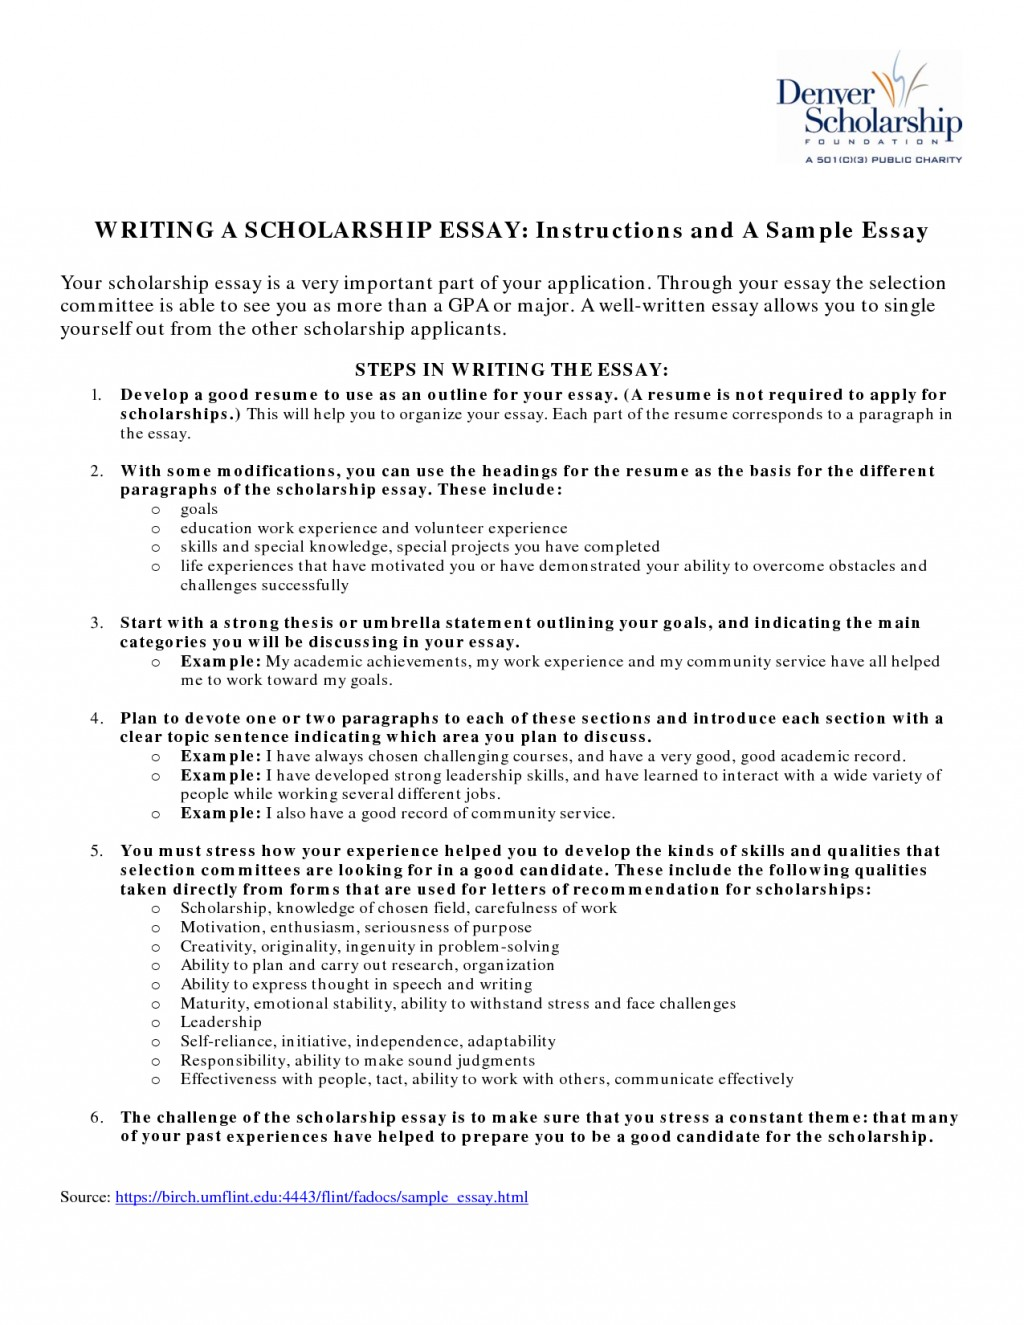 023 Essay Example What To Write For Scholarship About Yourself On Tips Writing Effective Essays Awesome A How That Stands Out Your Career Goals Financial Need Large